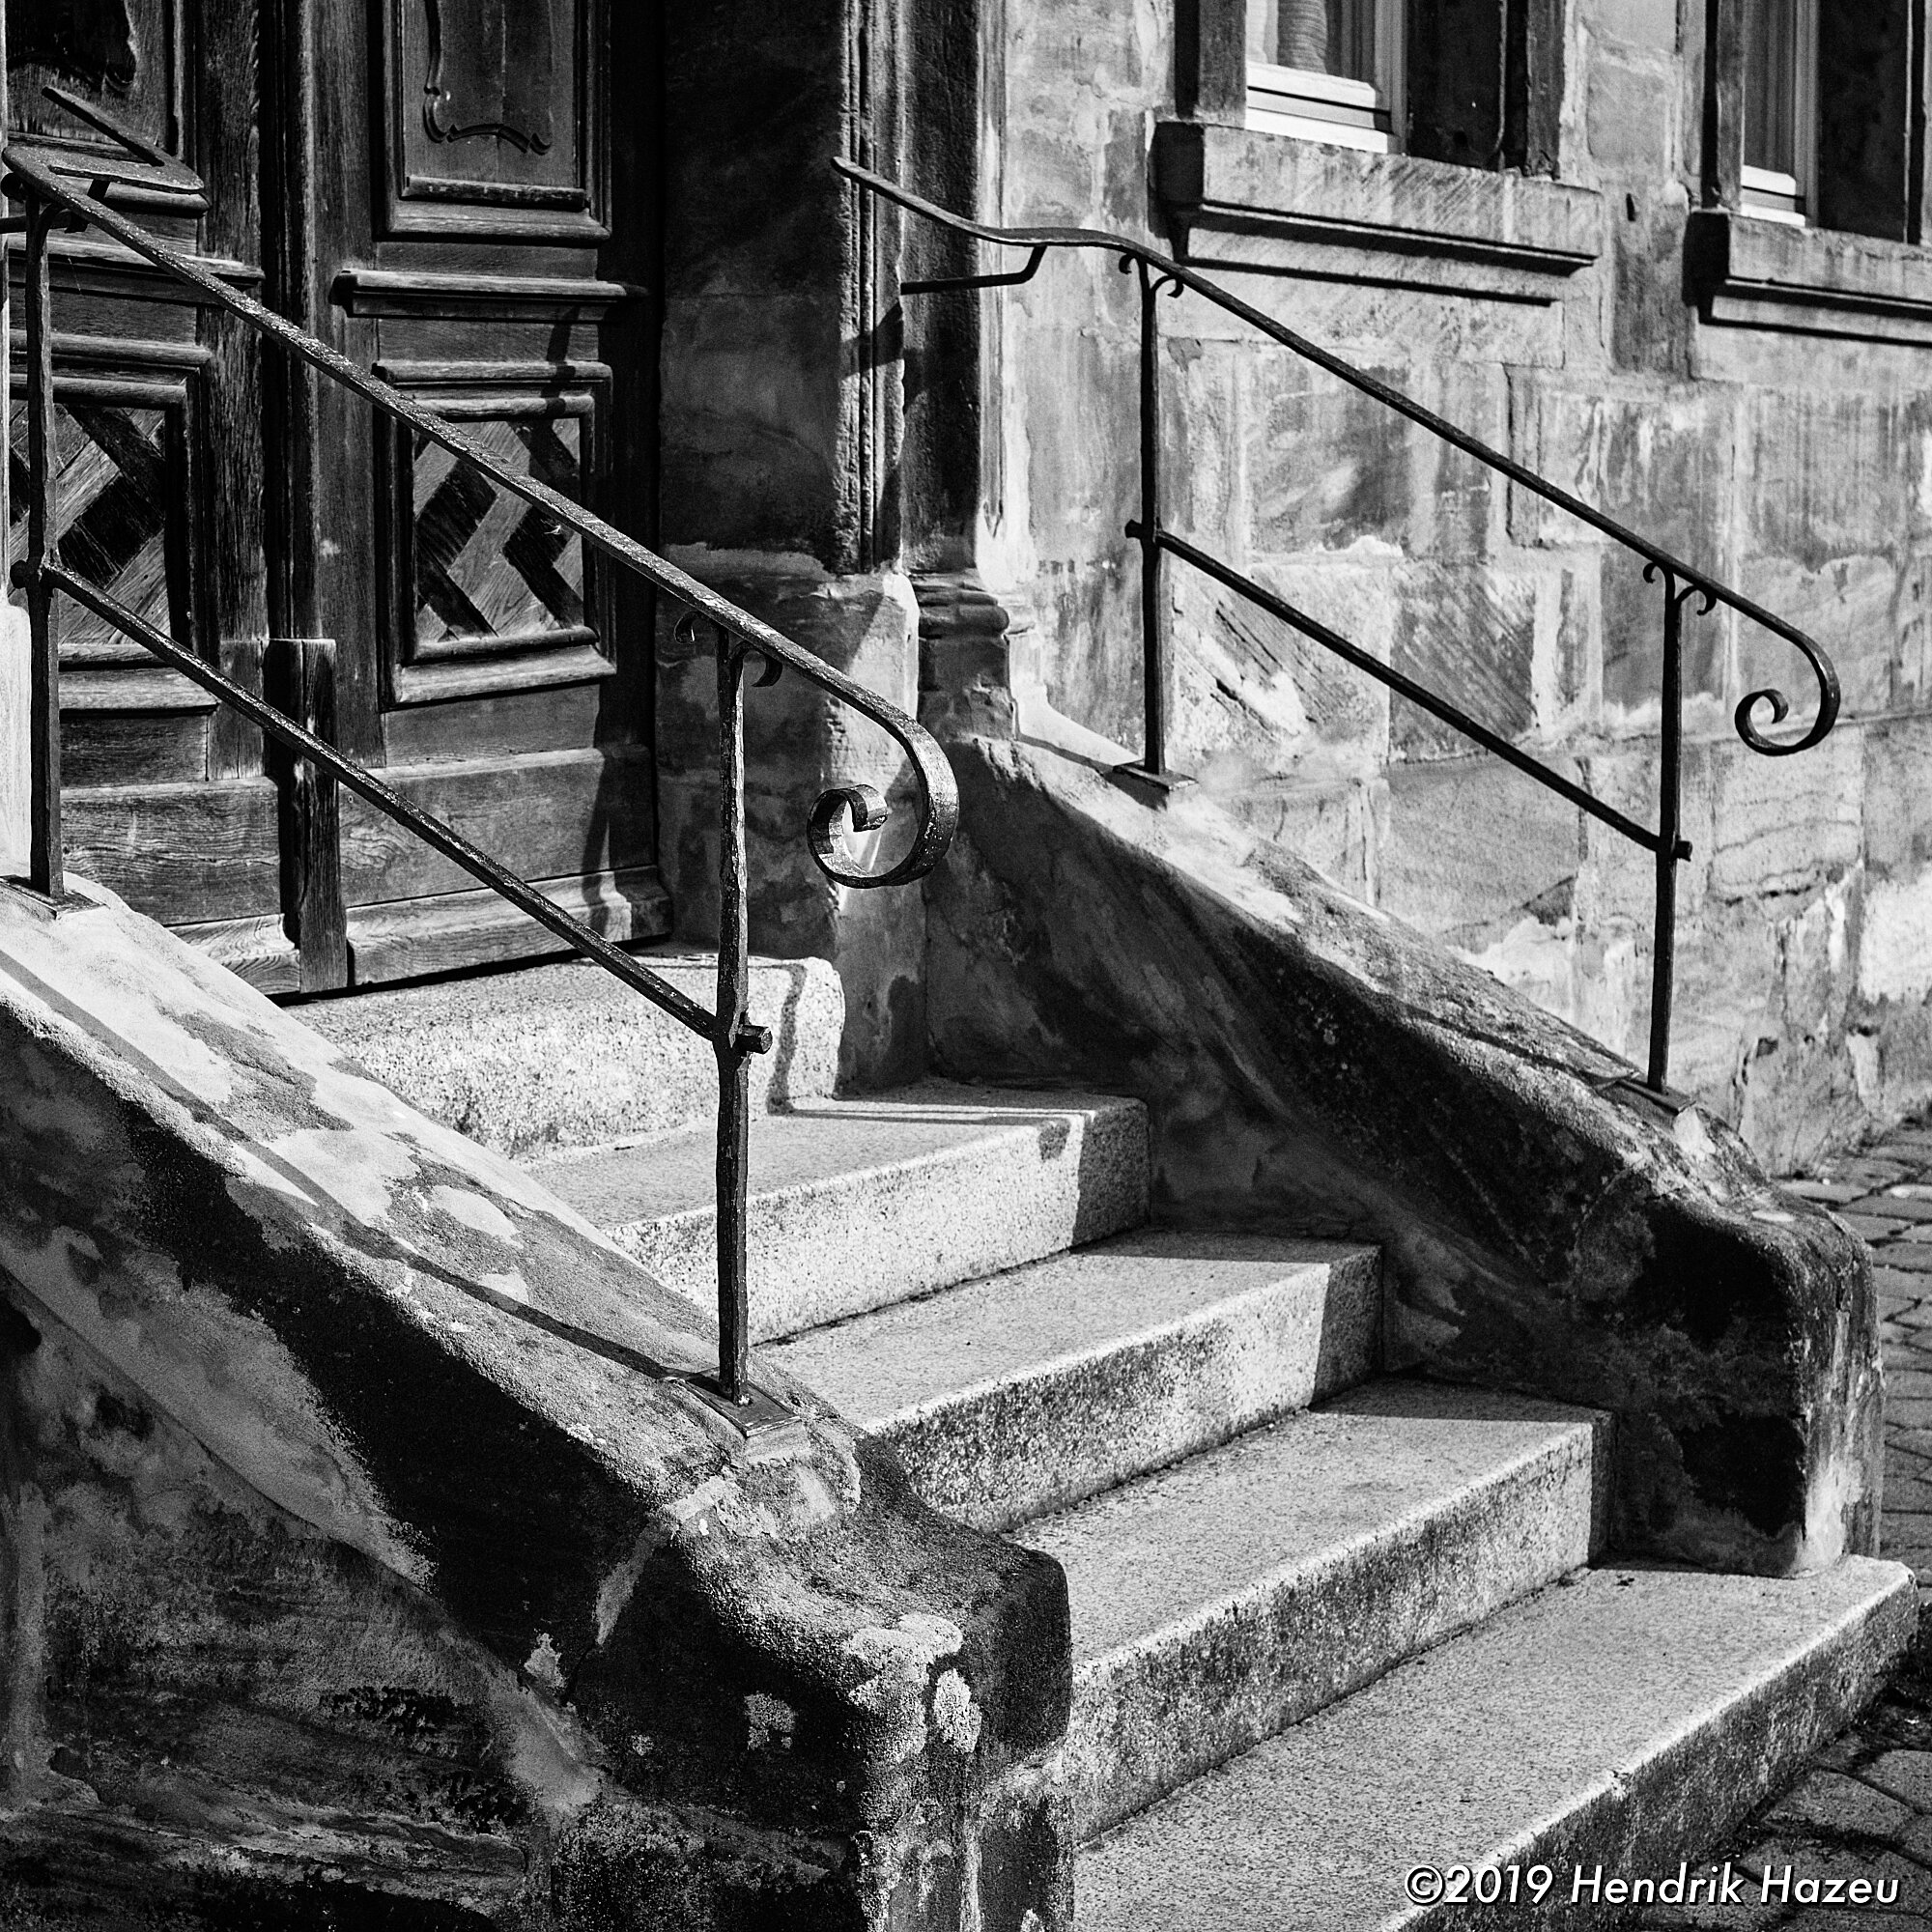 Steps in a square frame, seen with my X-Pro2 with XF35mm F/2 @F/8, 1/180 sec, ISO 200